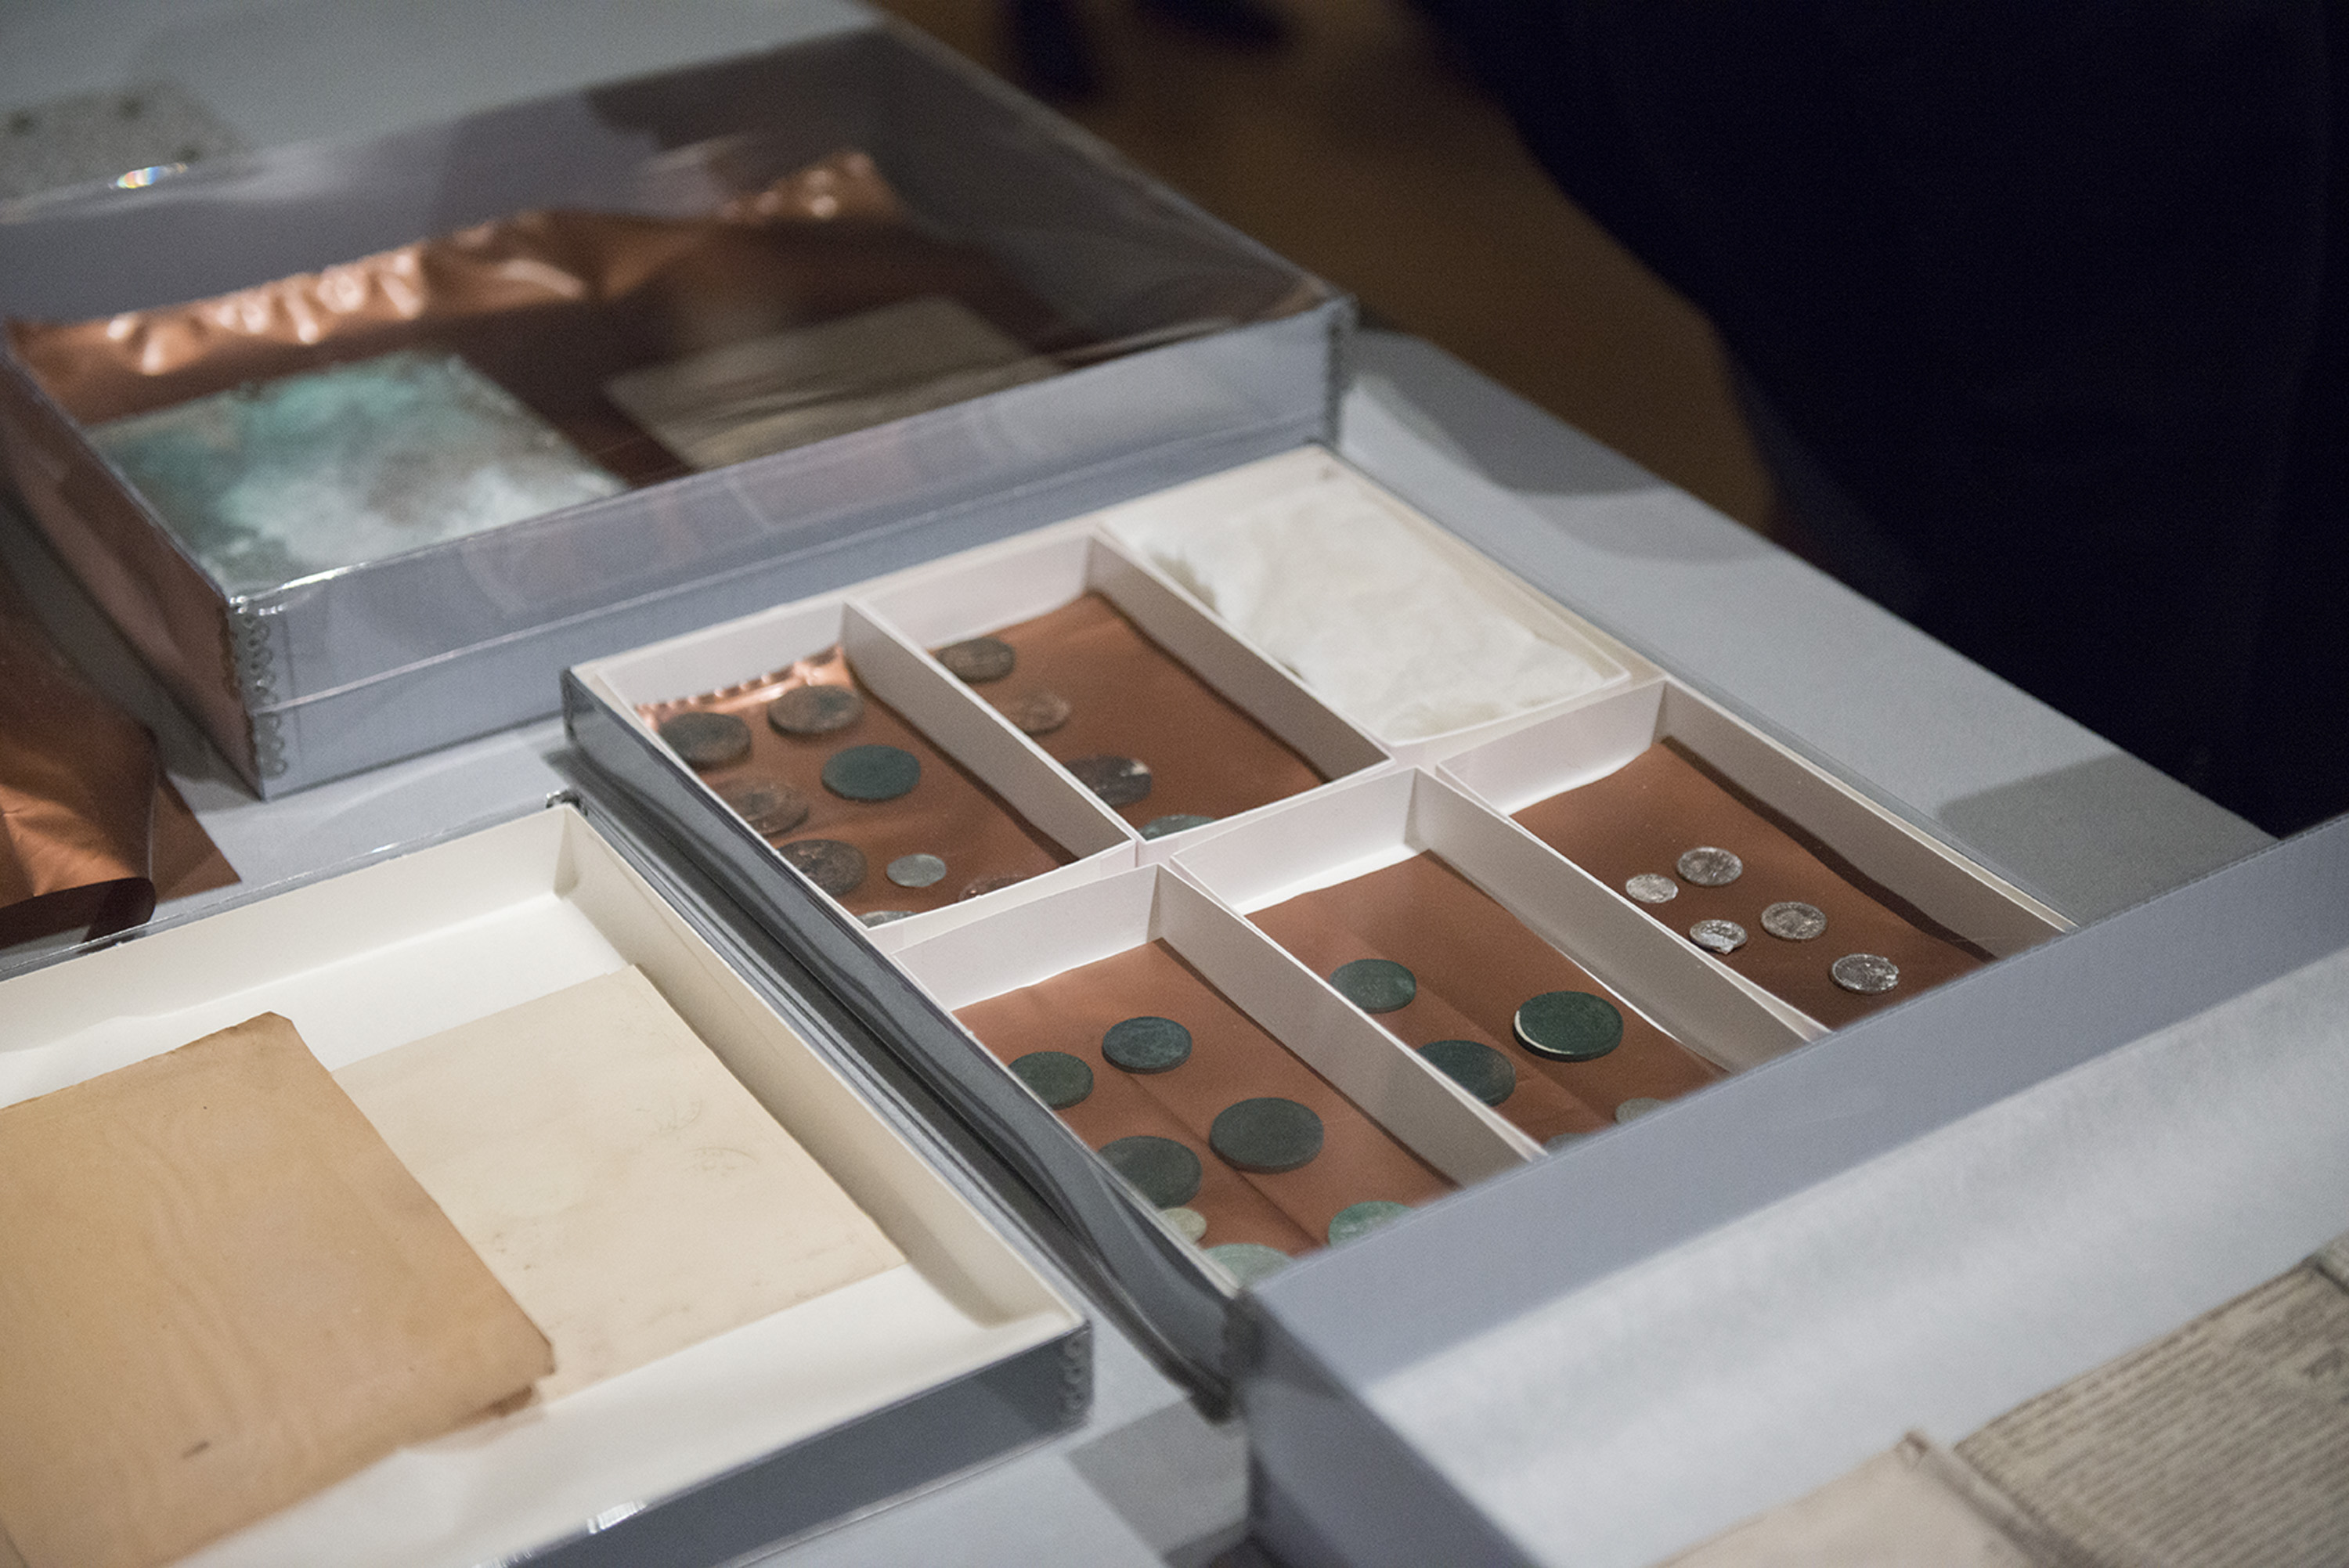 Contents of a time capsule found in the cornerstone of the Massachusetts State House building and undergoing examination and conservation work at the Museum of Fine Arts, Boston. January 6, 2015 (Photo courtesy of Museum of Fine Arts, Boston)